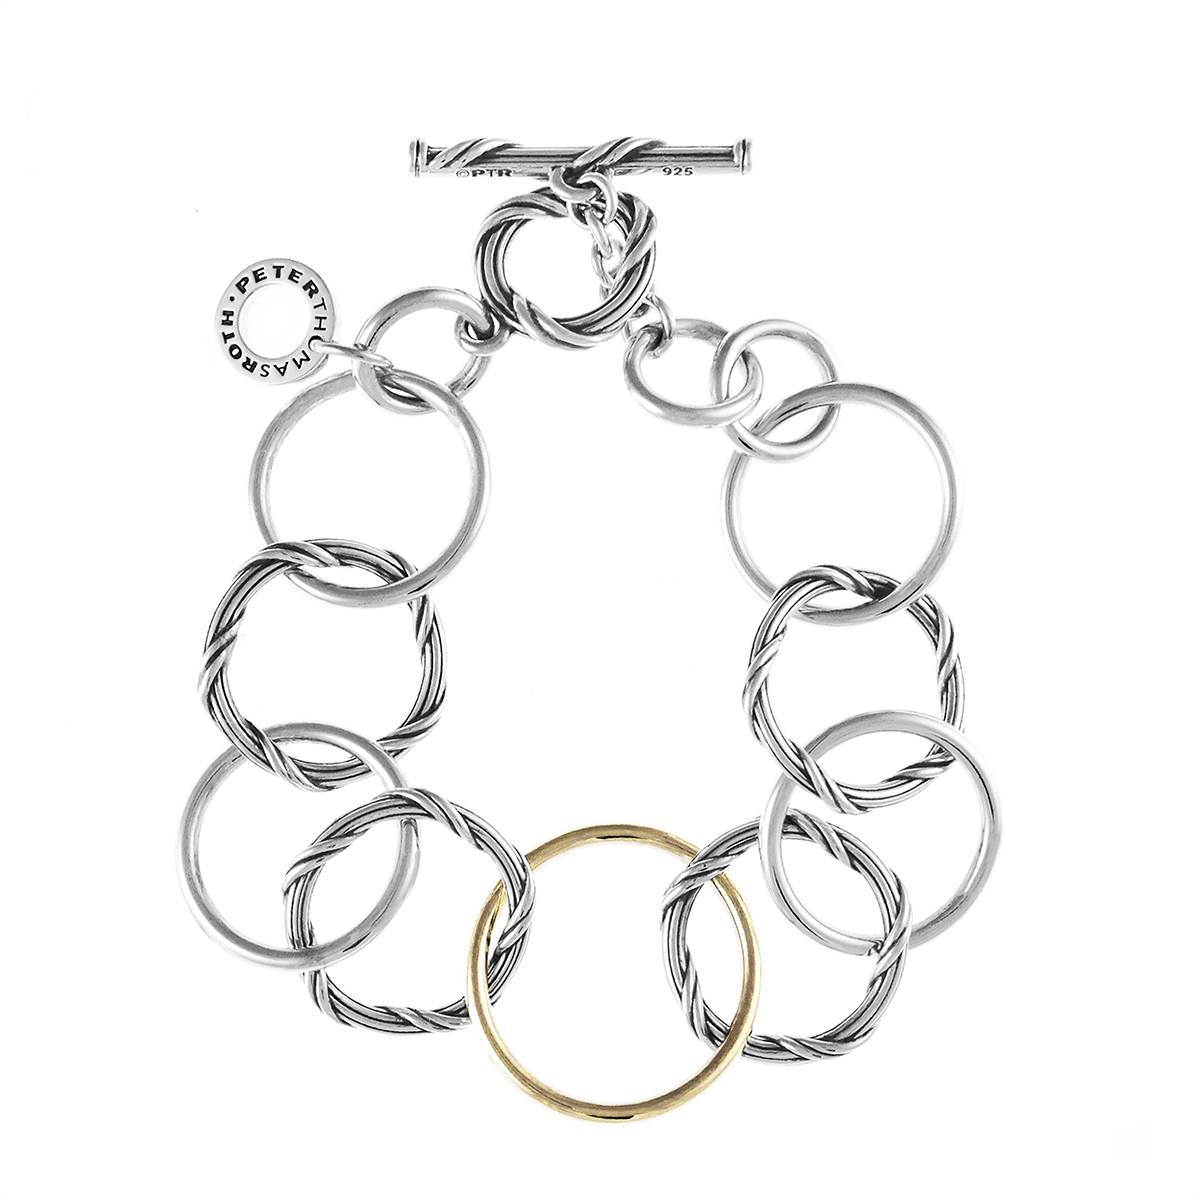 B7202TYNONO-ribbon-and-reed-signature-mixed-link-bracelet-in-sterling-silver-and-18k-yellow-gold_v1